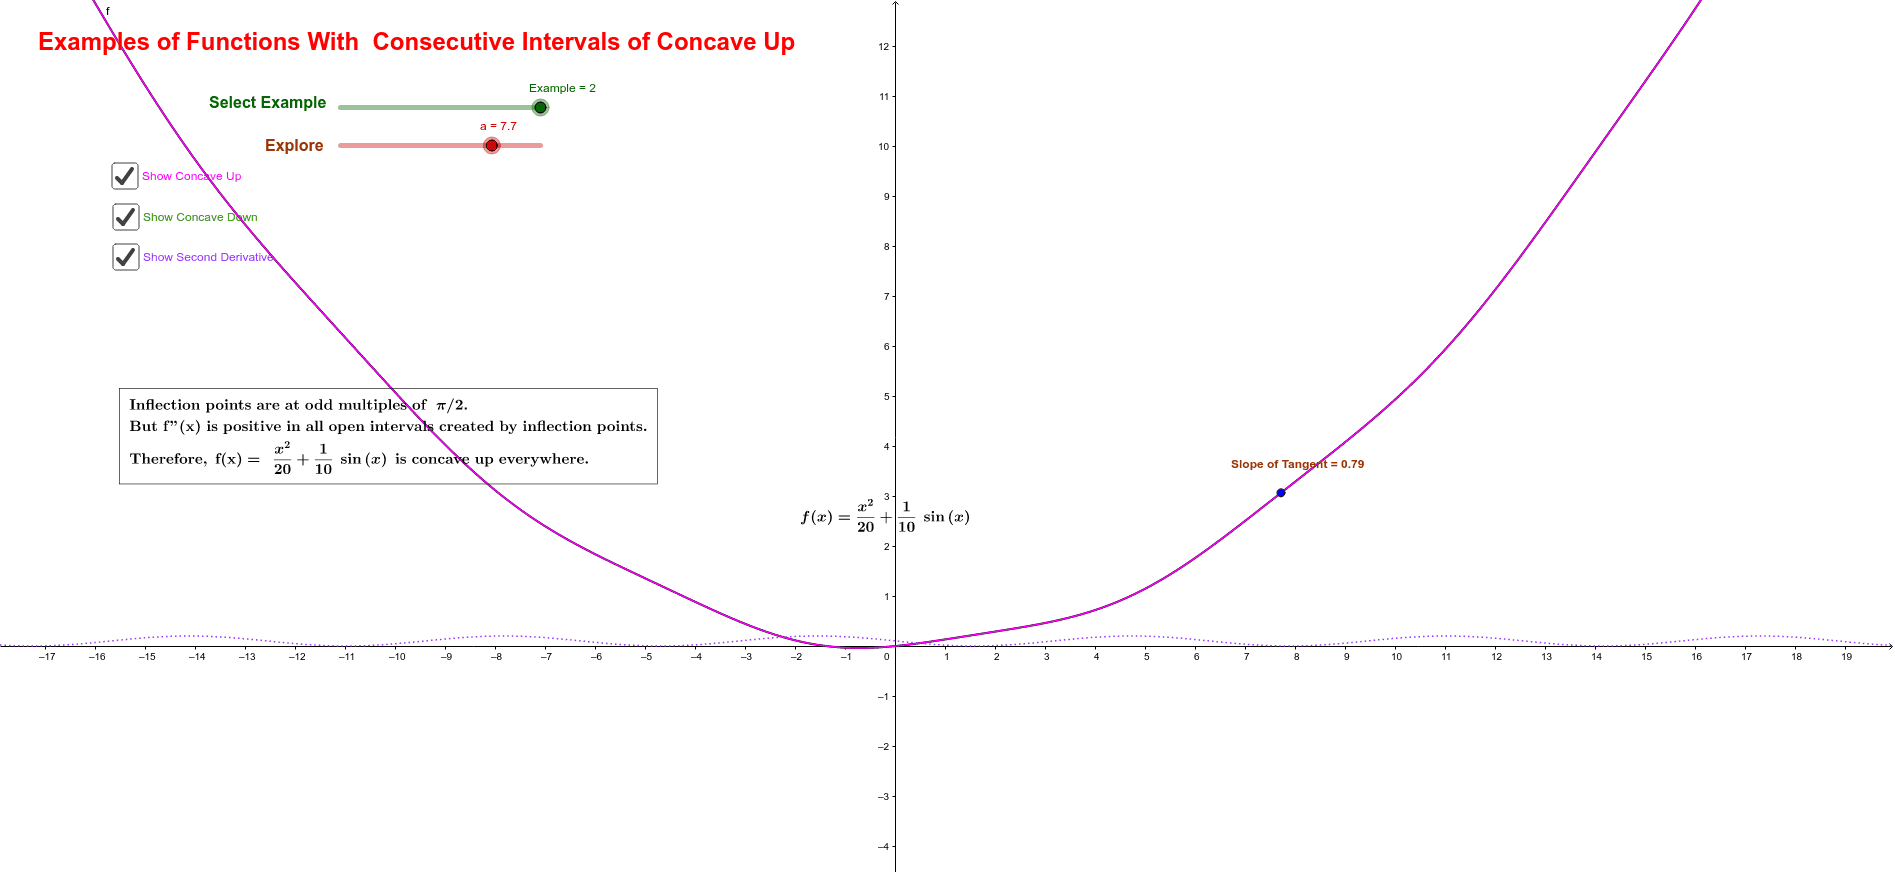 Consecutive Intervals of Concave Up